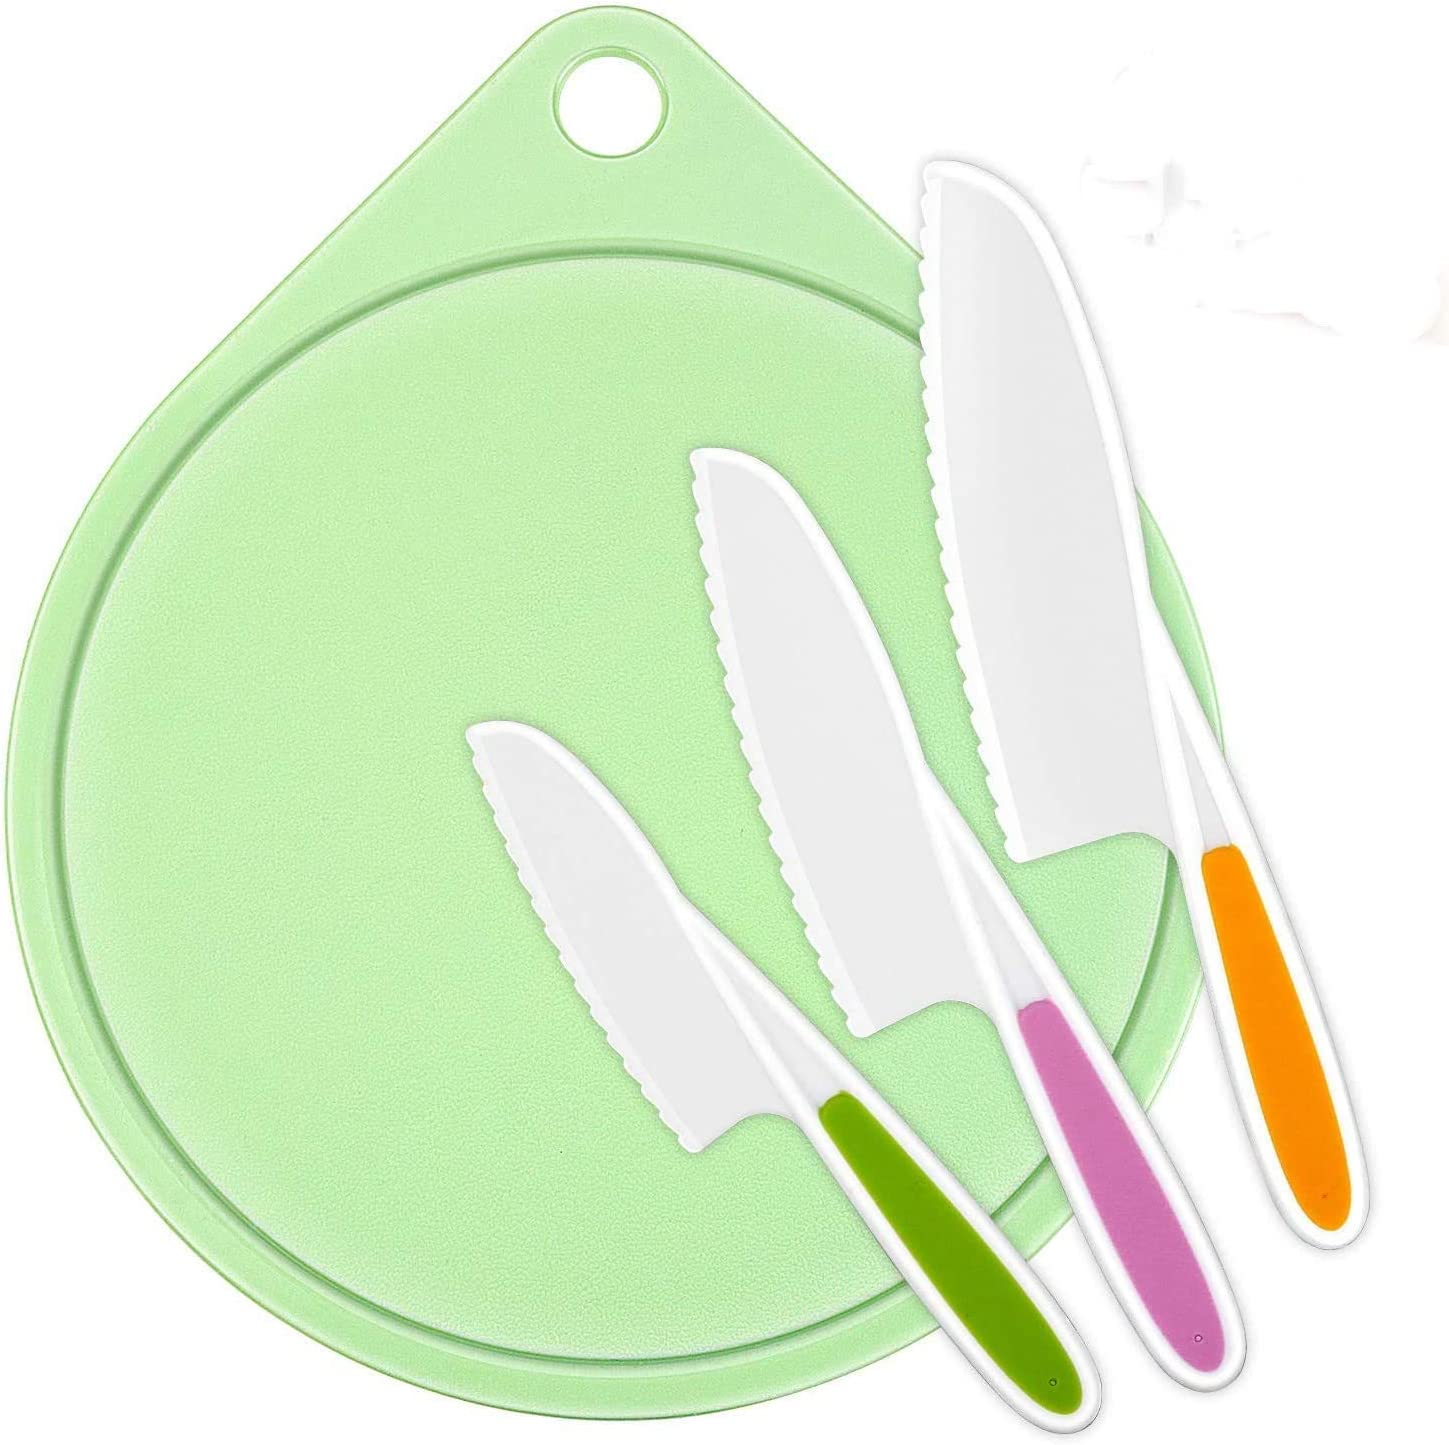 LEEFE kids Cooking Supplies Knife Cutting 3-Piece and Great Spring new work one after another interest Fi Board